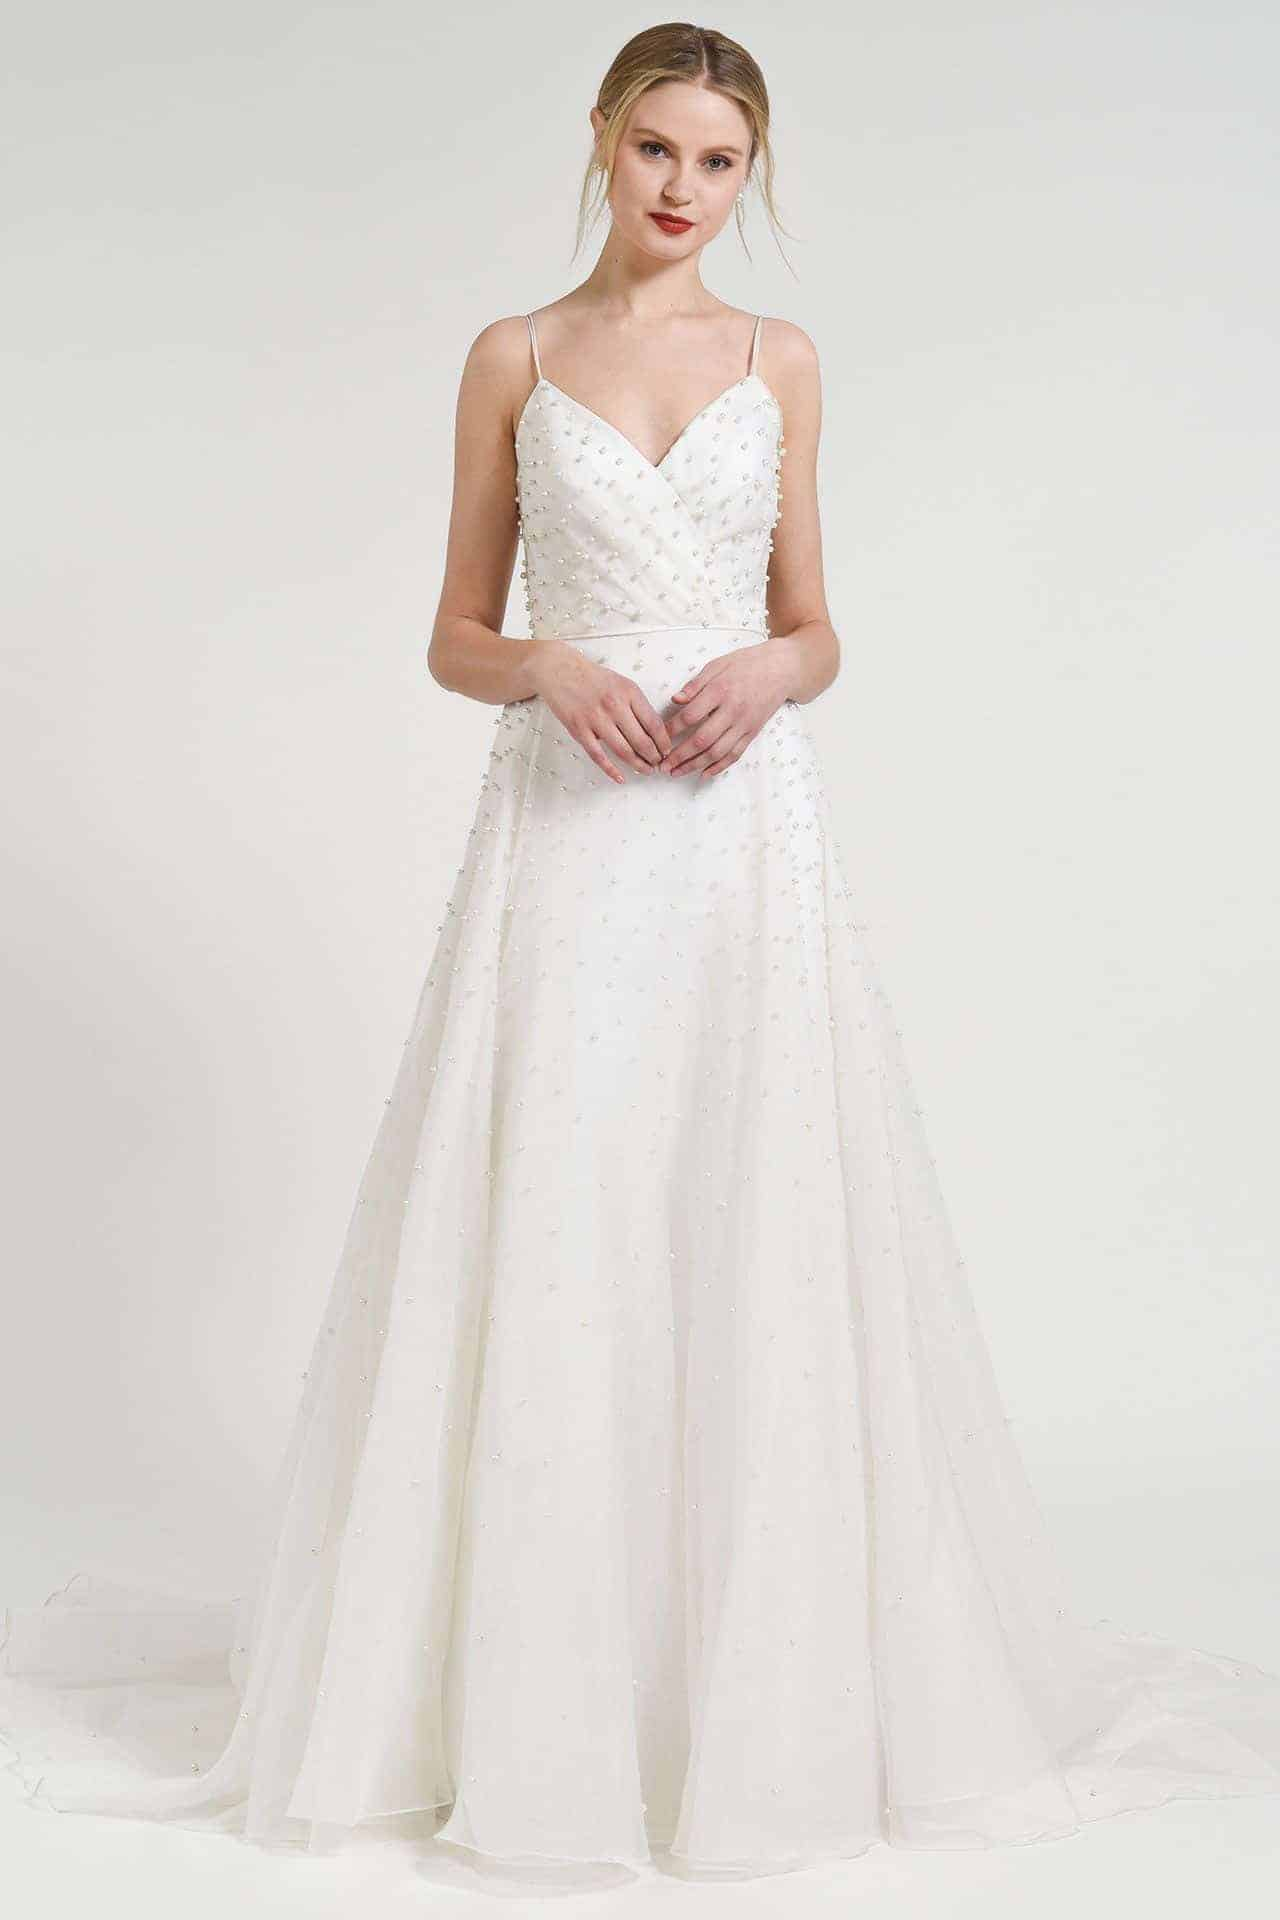 simple wedding dress with pearls by Jenny Yoo